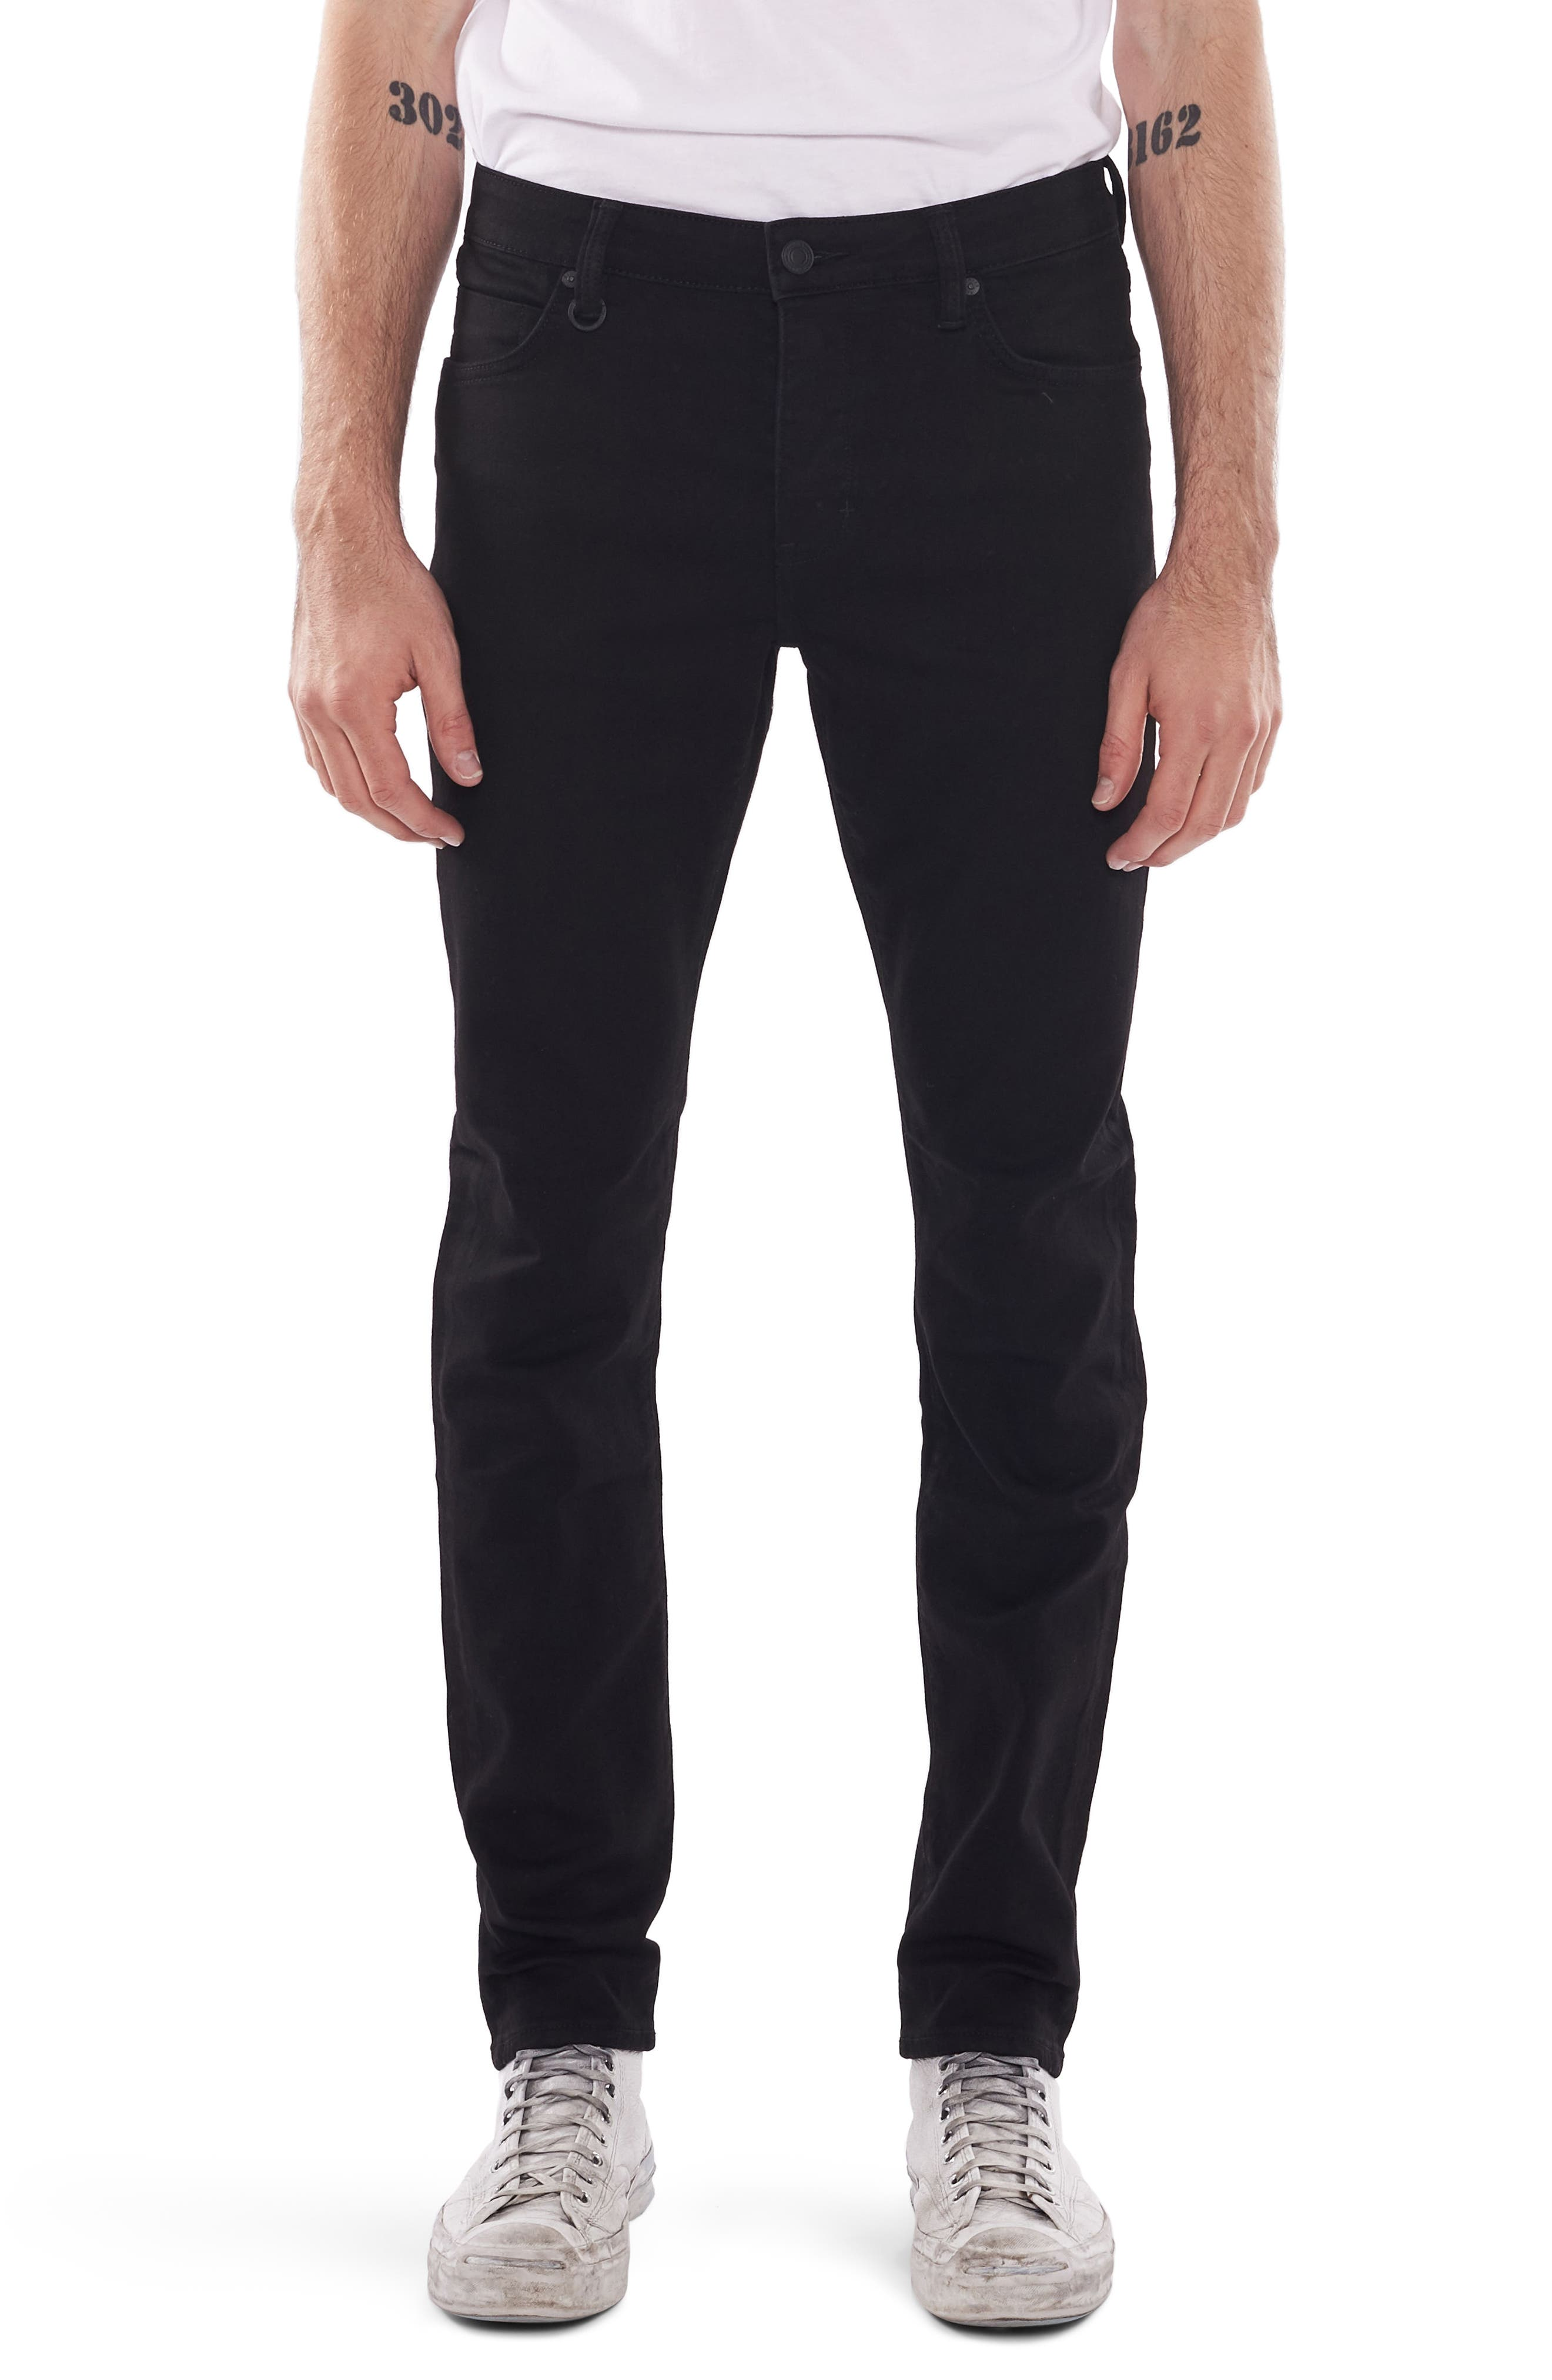 Iggy Skinny Fit Jeans,                             Main thumbnail 1, color,                             Perfecto